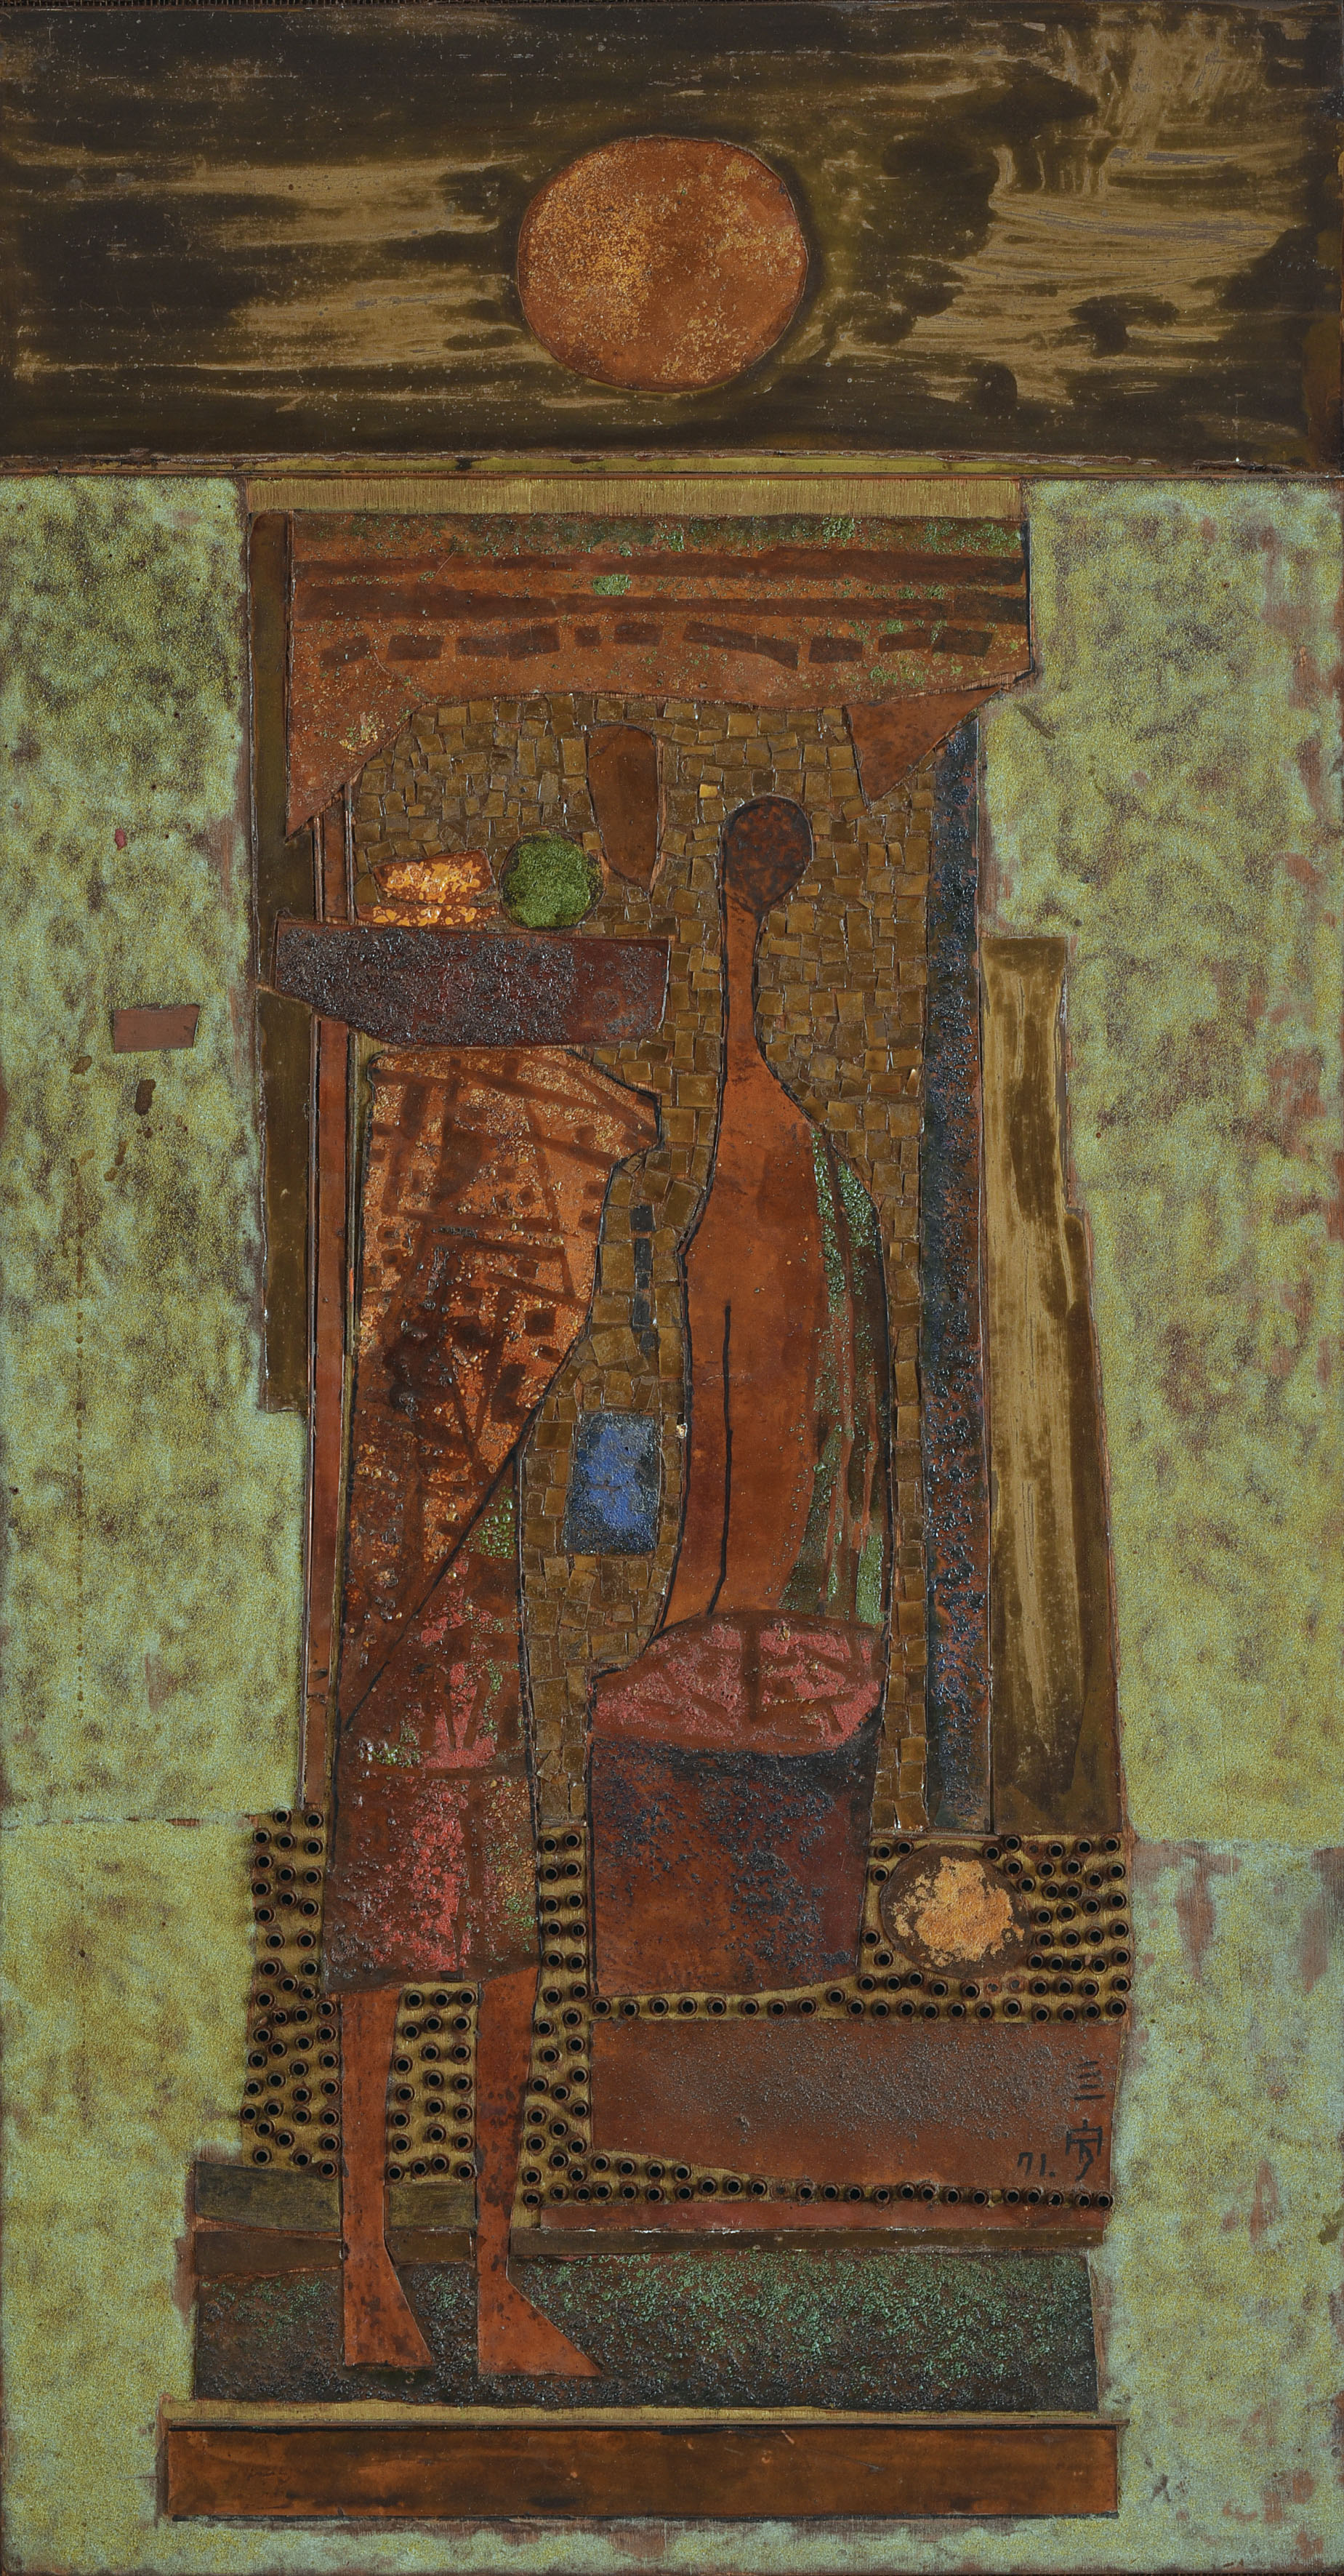 Cheong Soo Pieng, Noon, mixed media on board, 96.5 x 51 cm, 1970-71